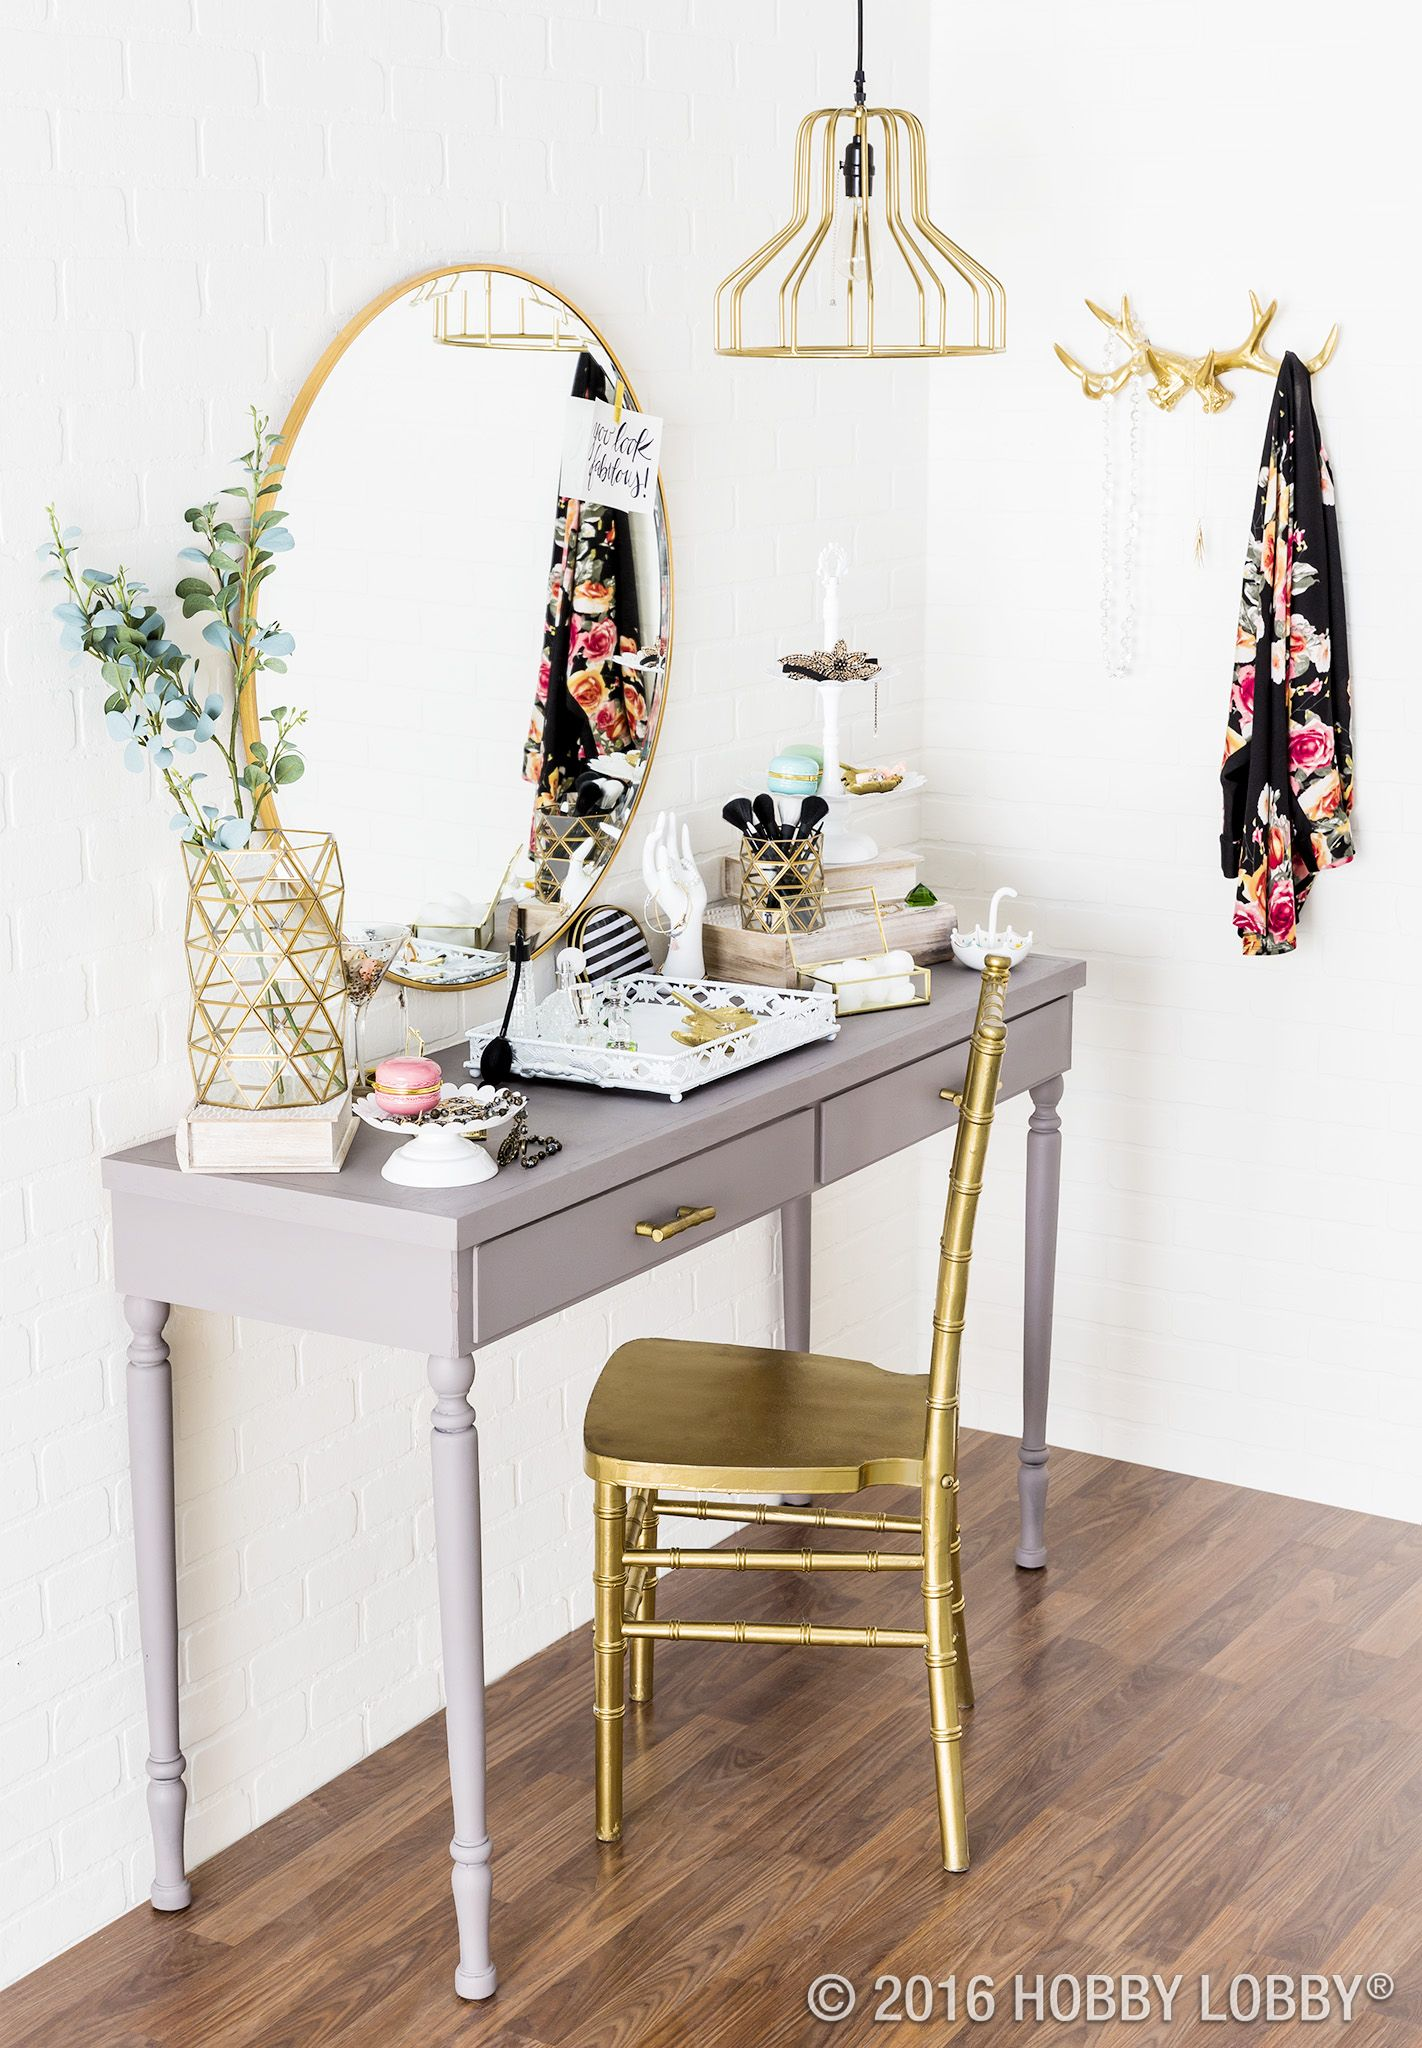 Give your vanity boutiquey vibes with glamorous gold